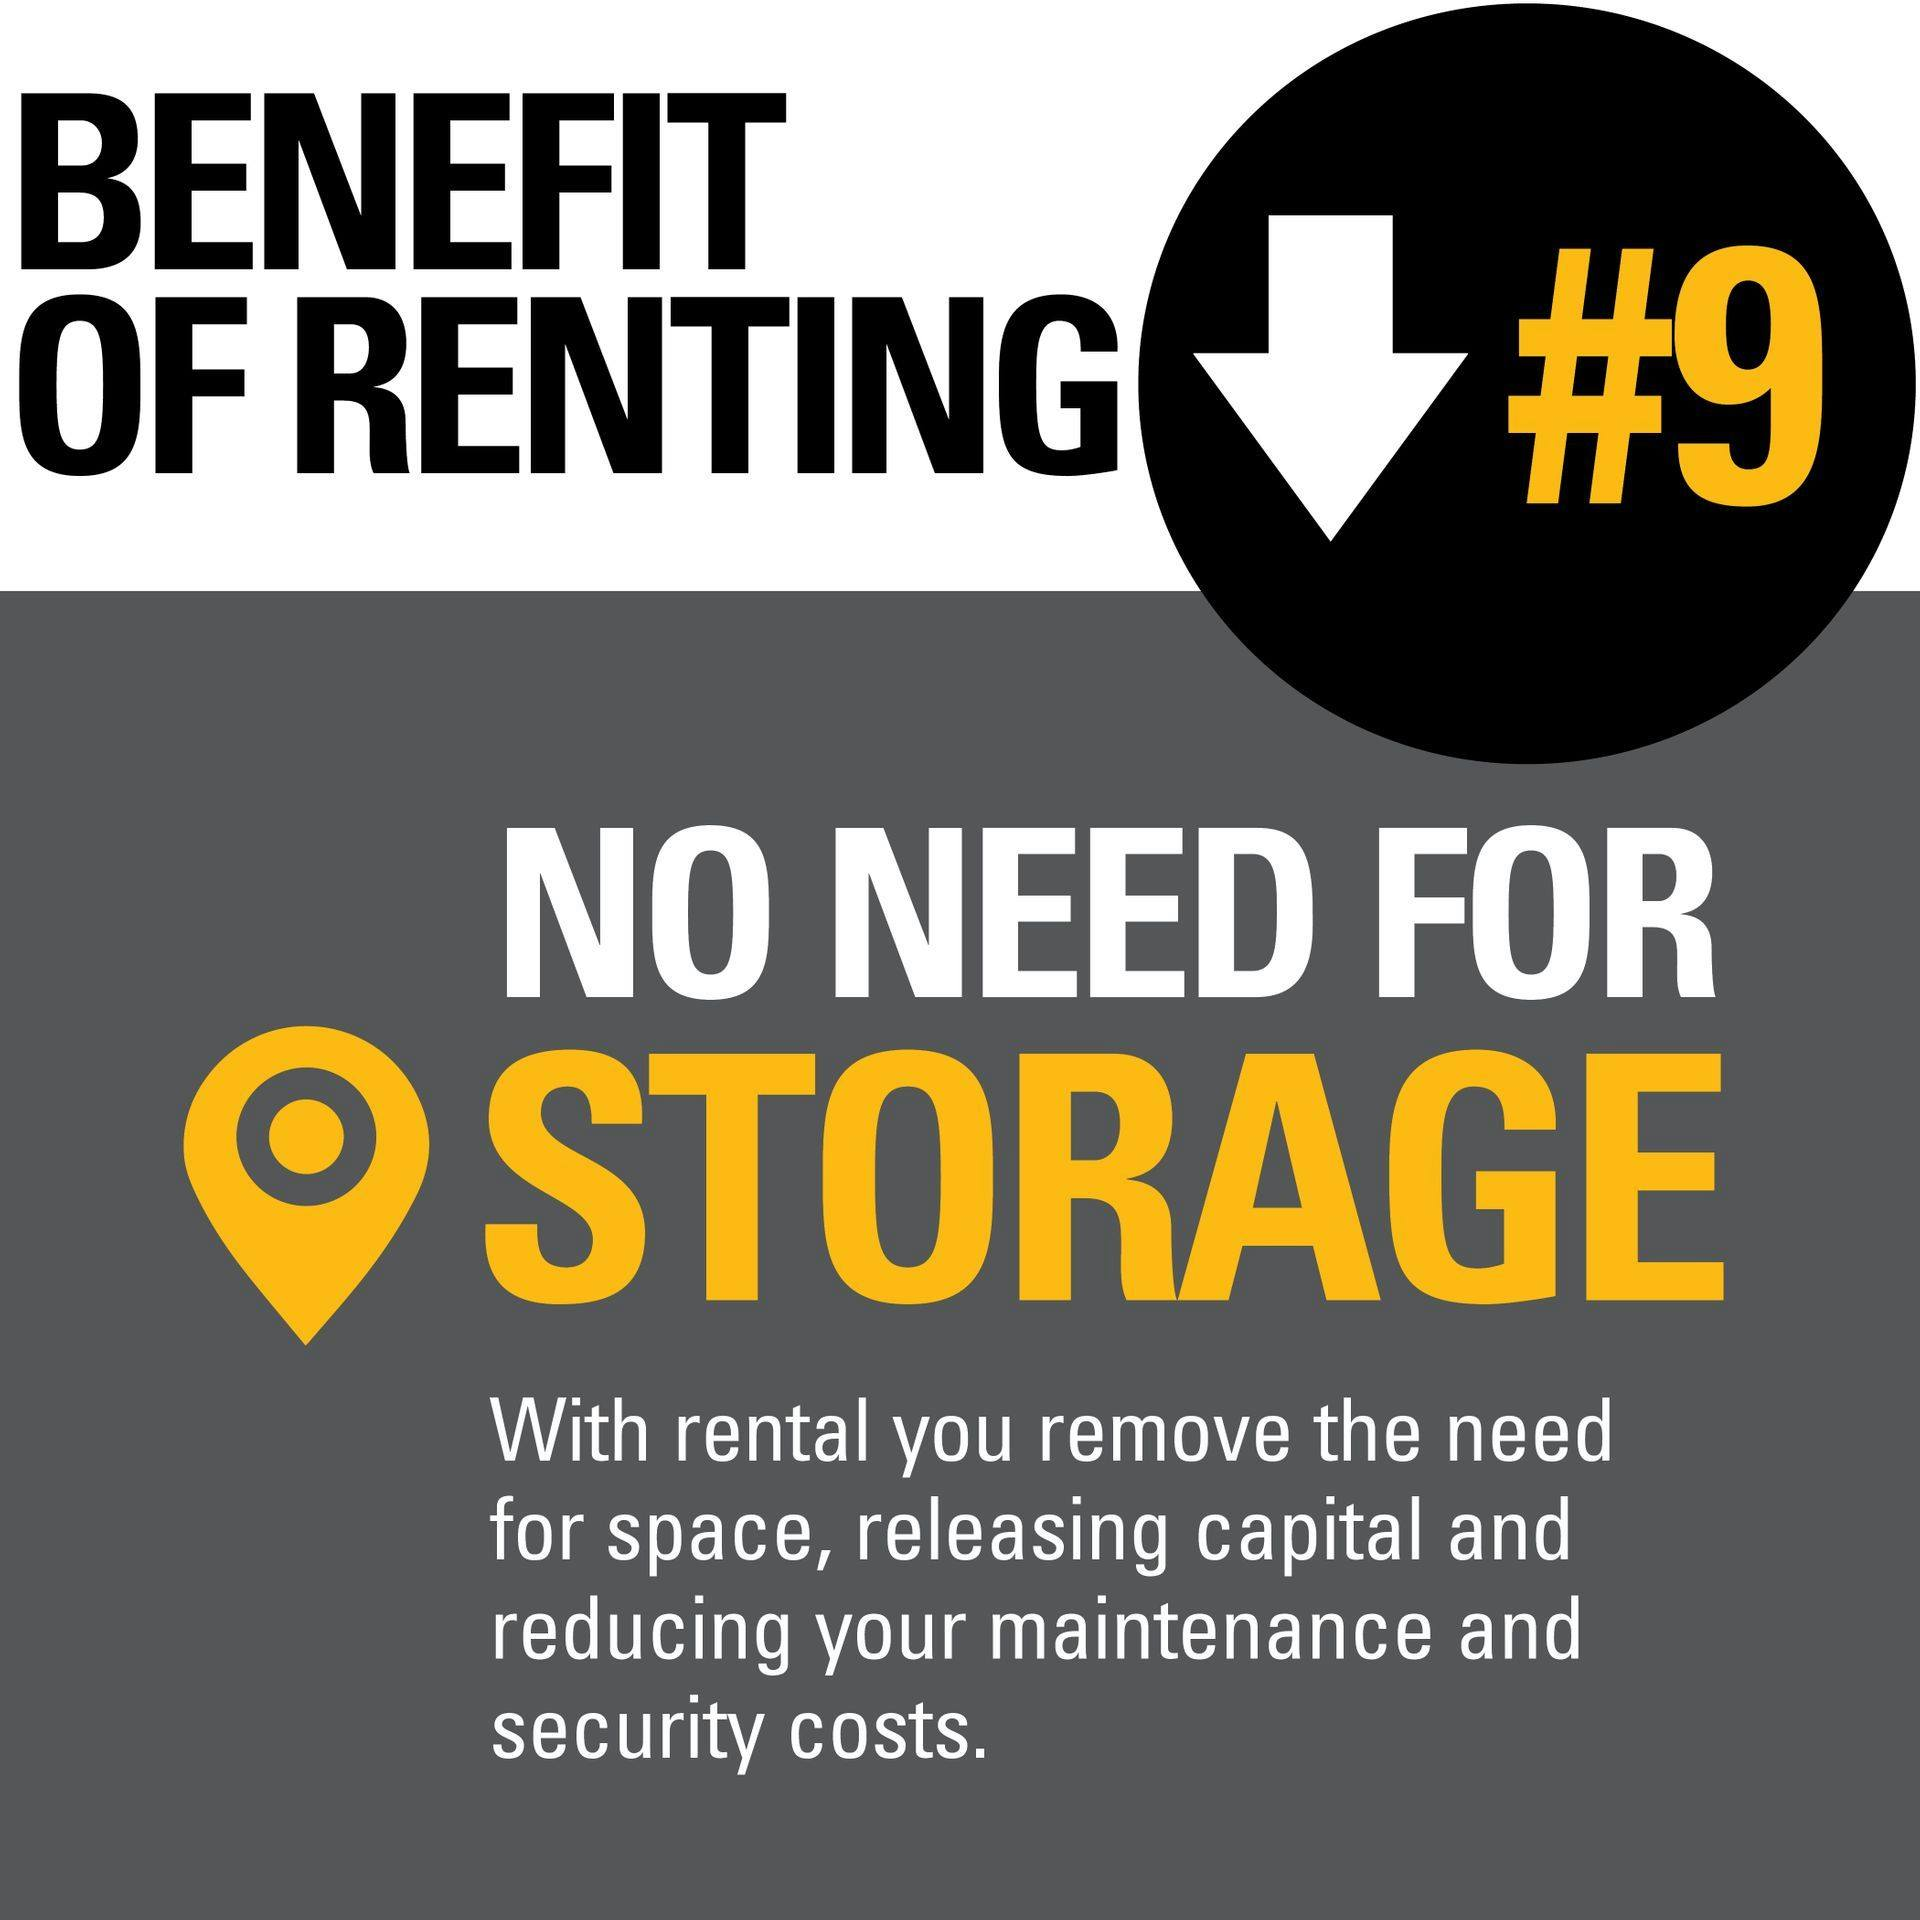 9 Benefit of Renting